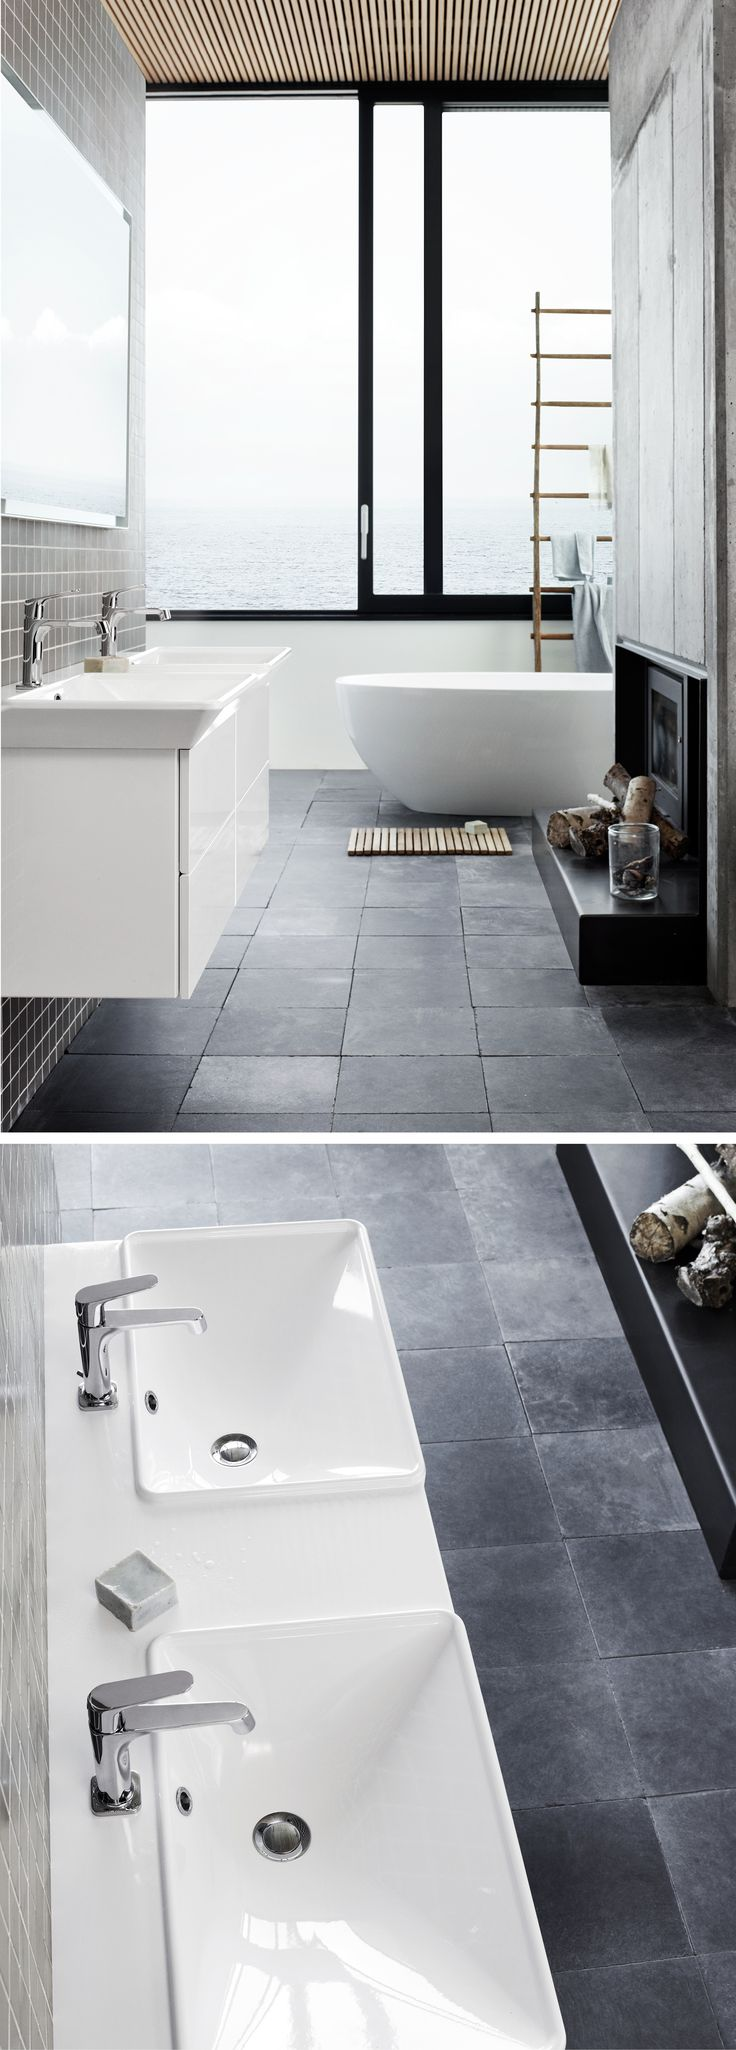 Double washbasin with soft curves and straight lines. An elegant and practical solution.